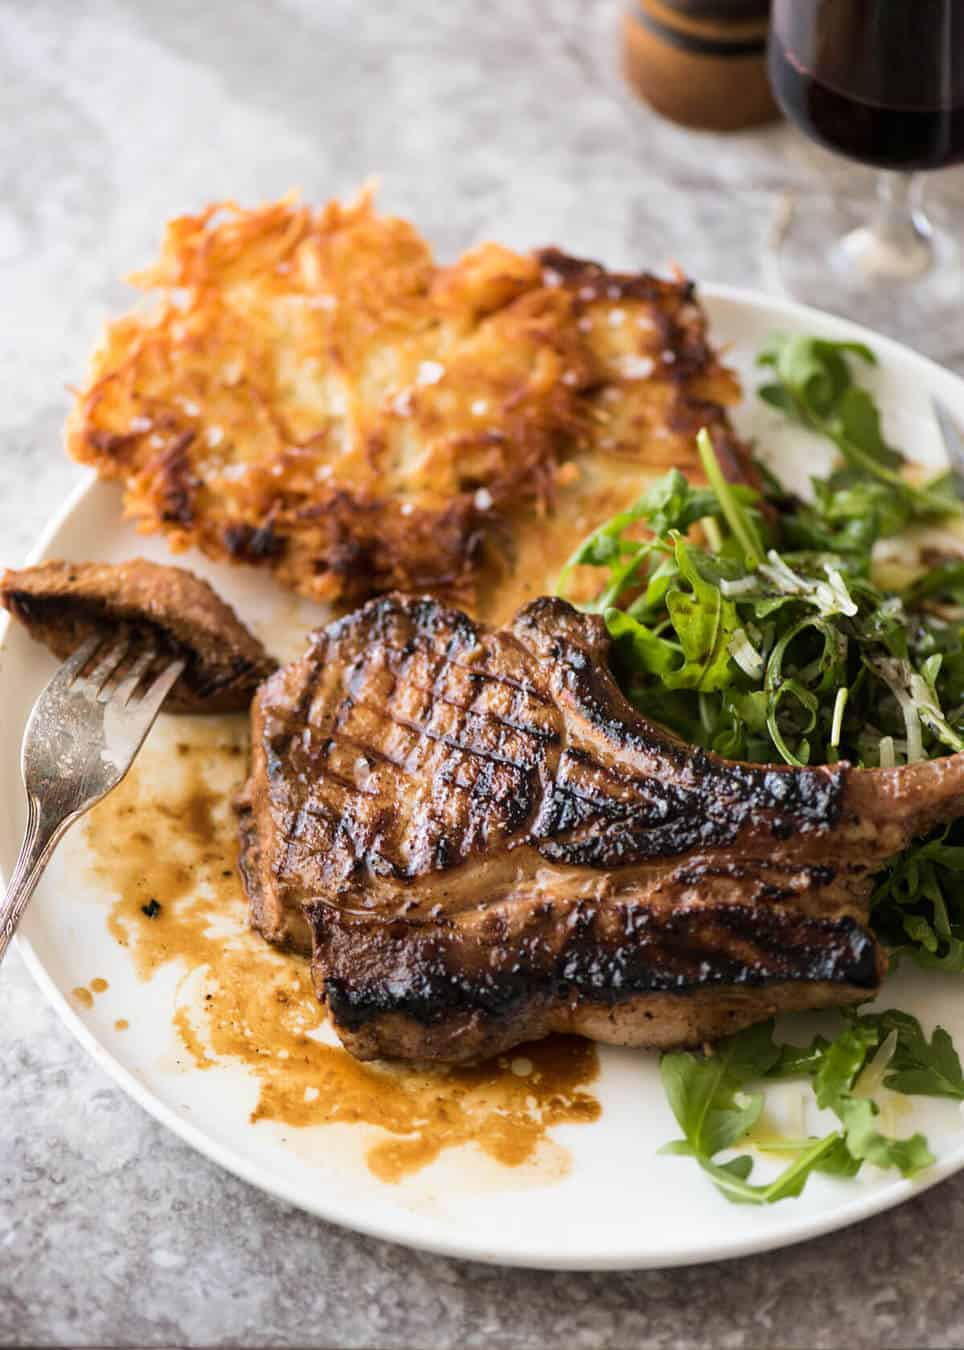 A Great Marinade For Pork Chops Makes Them Extra Juicy Infuses With Savoury Flavour